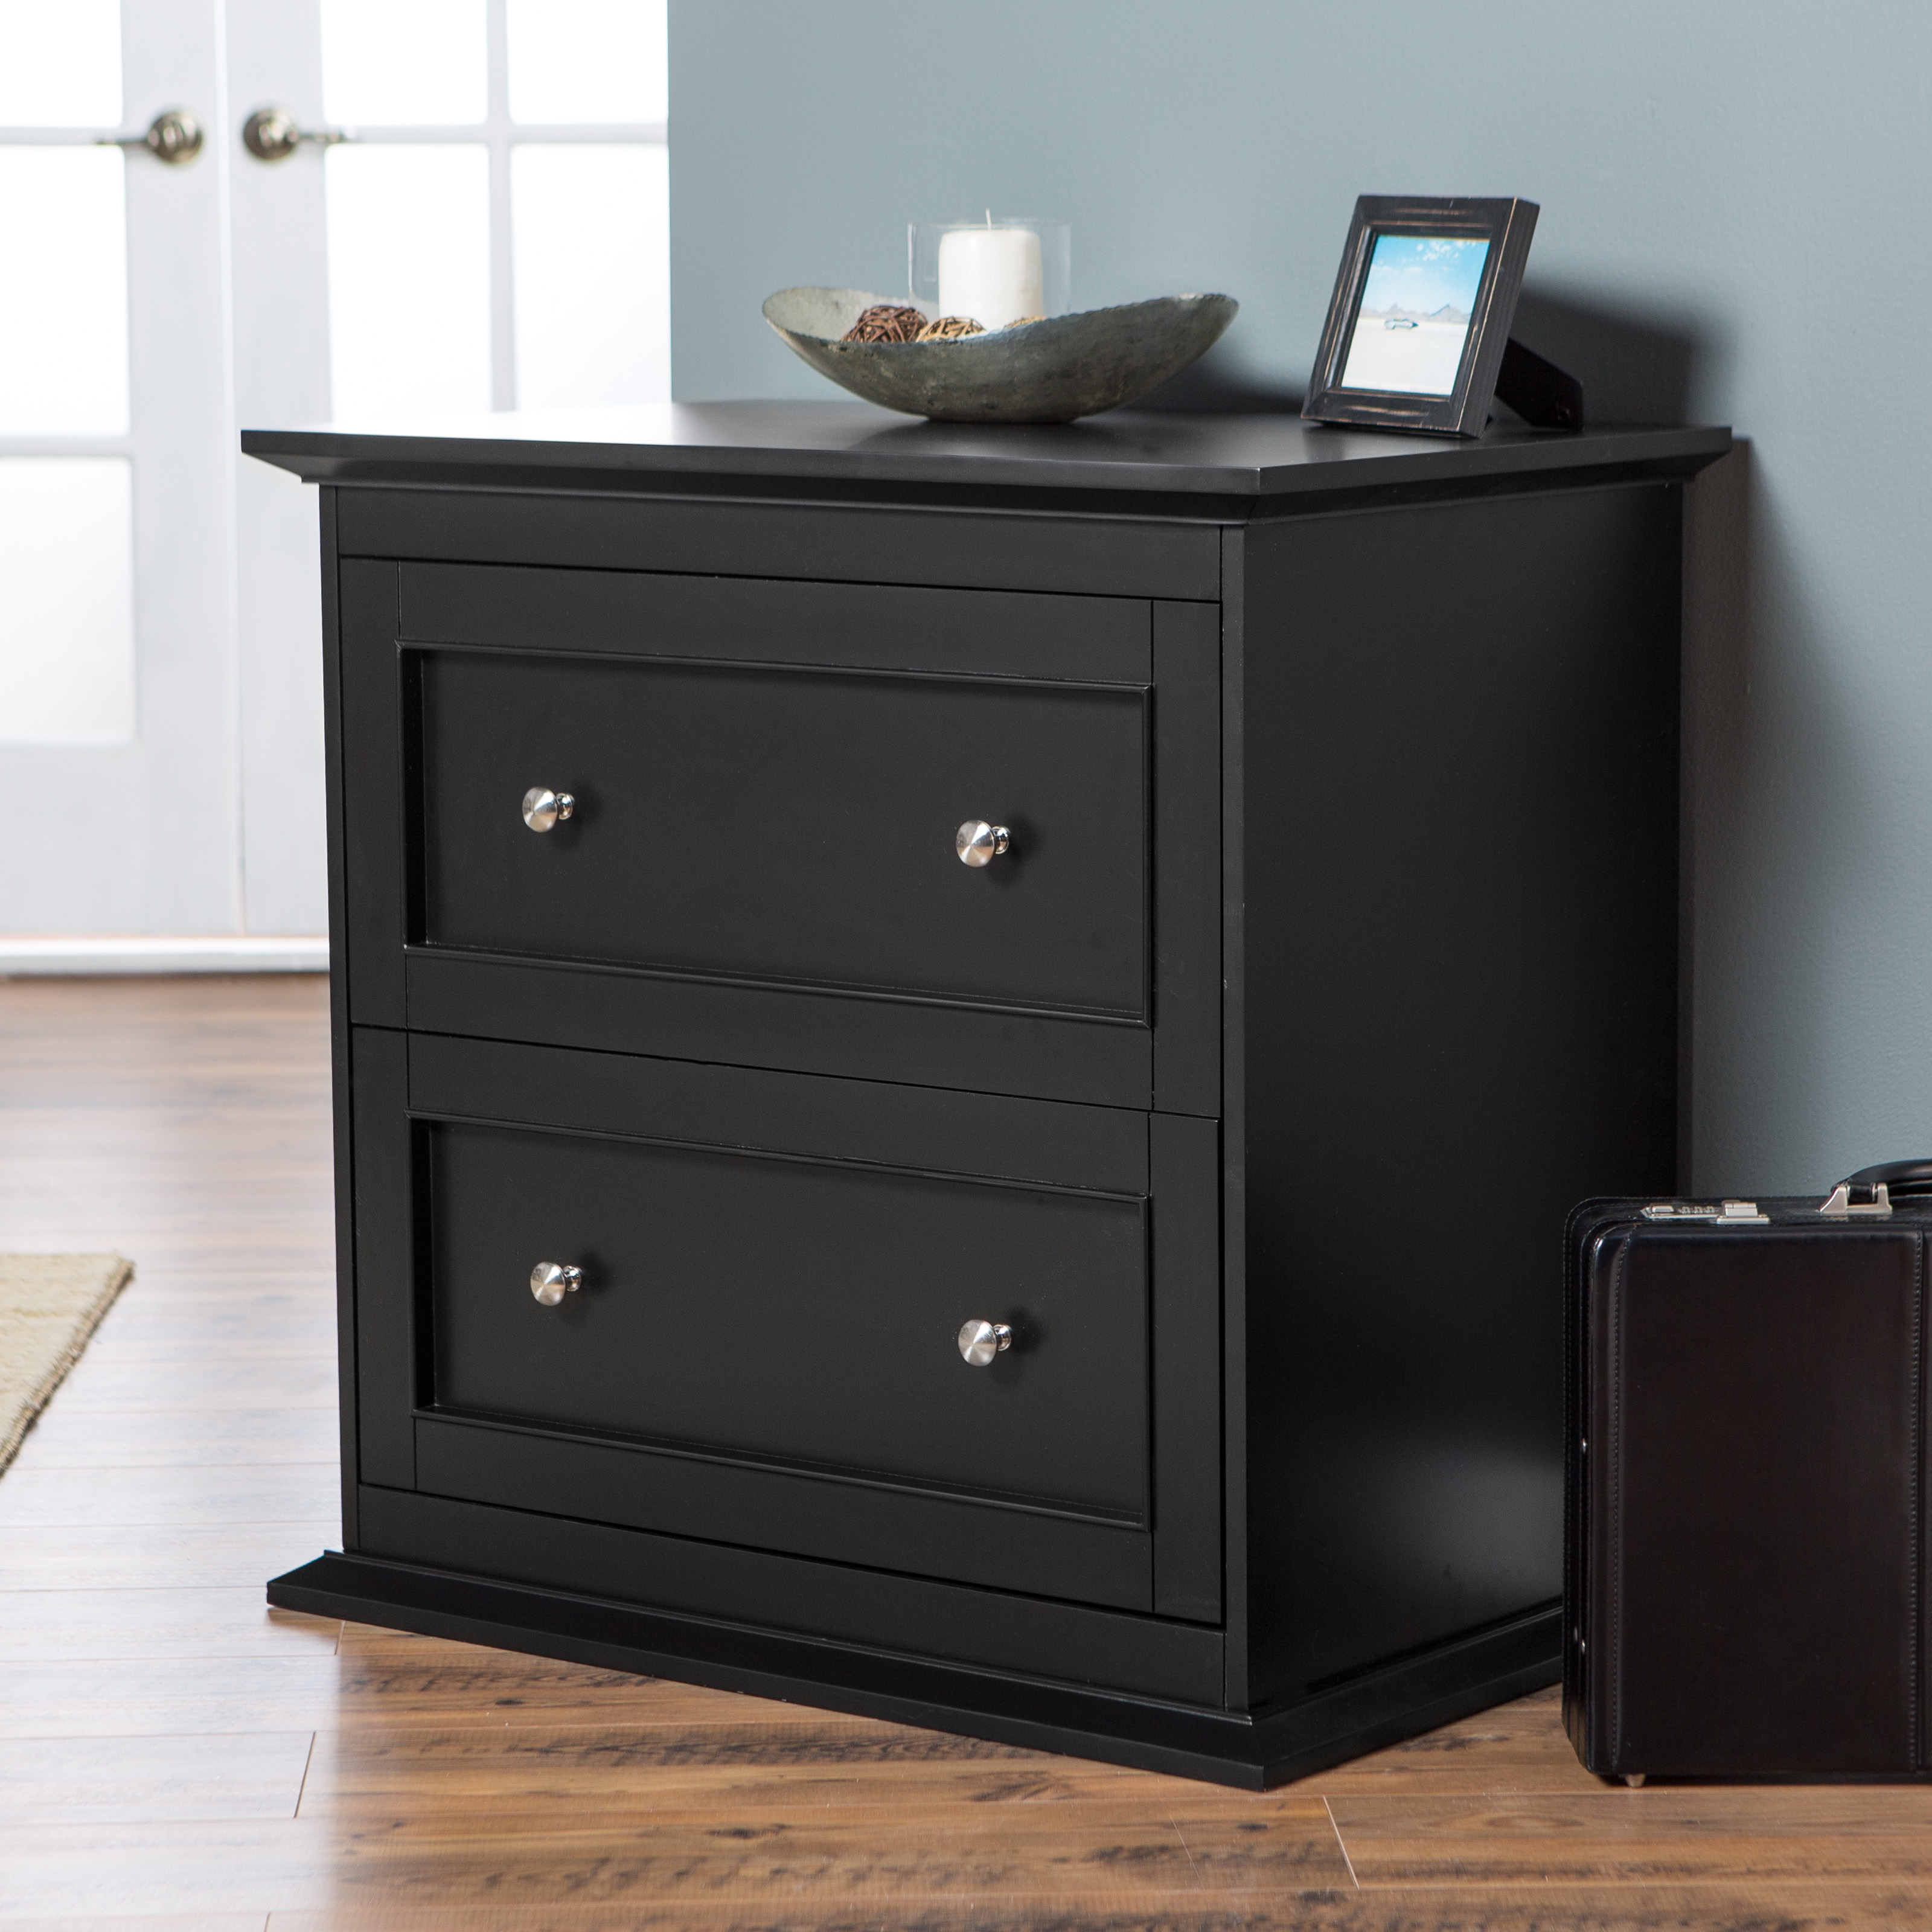 Elegant Belham Living Hampton 2 Drawer Lateral Wood Filing Cabinet   Black